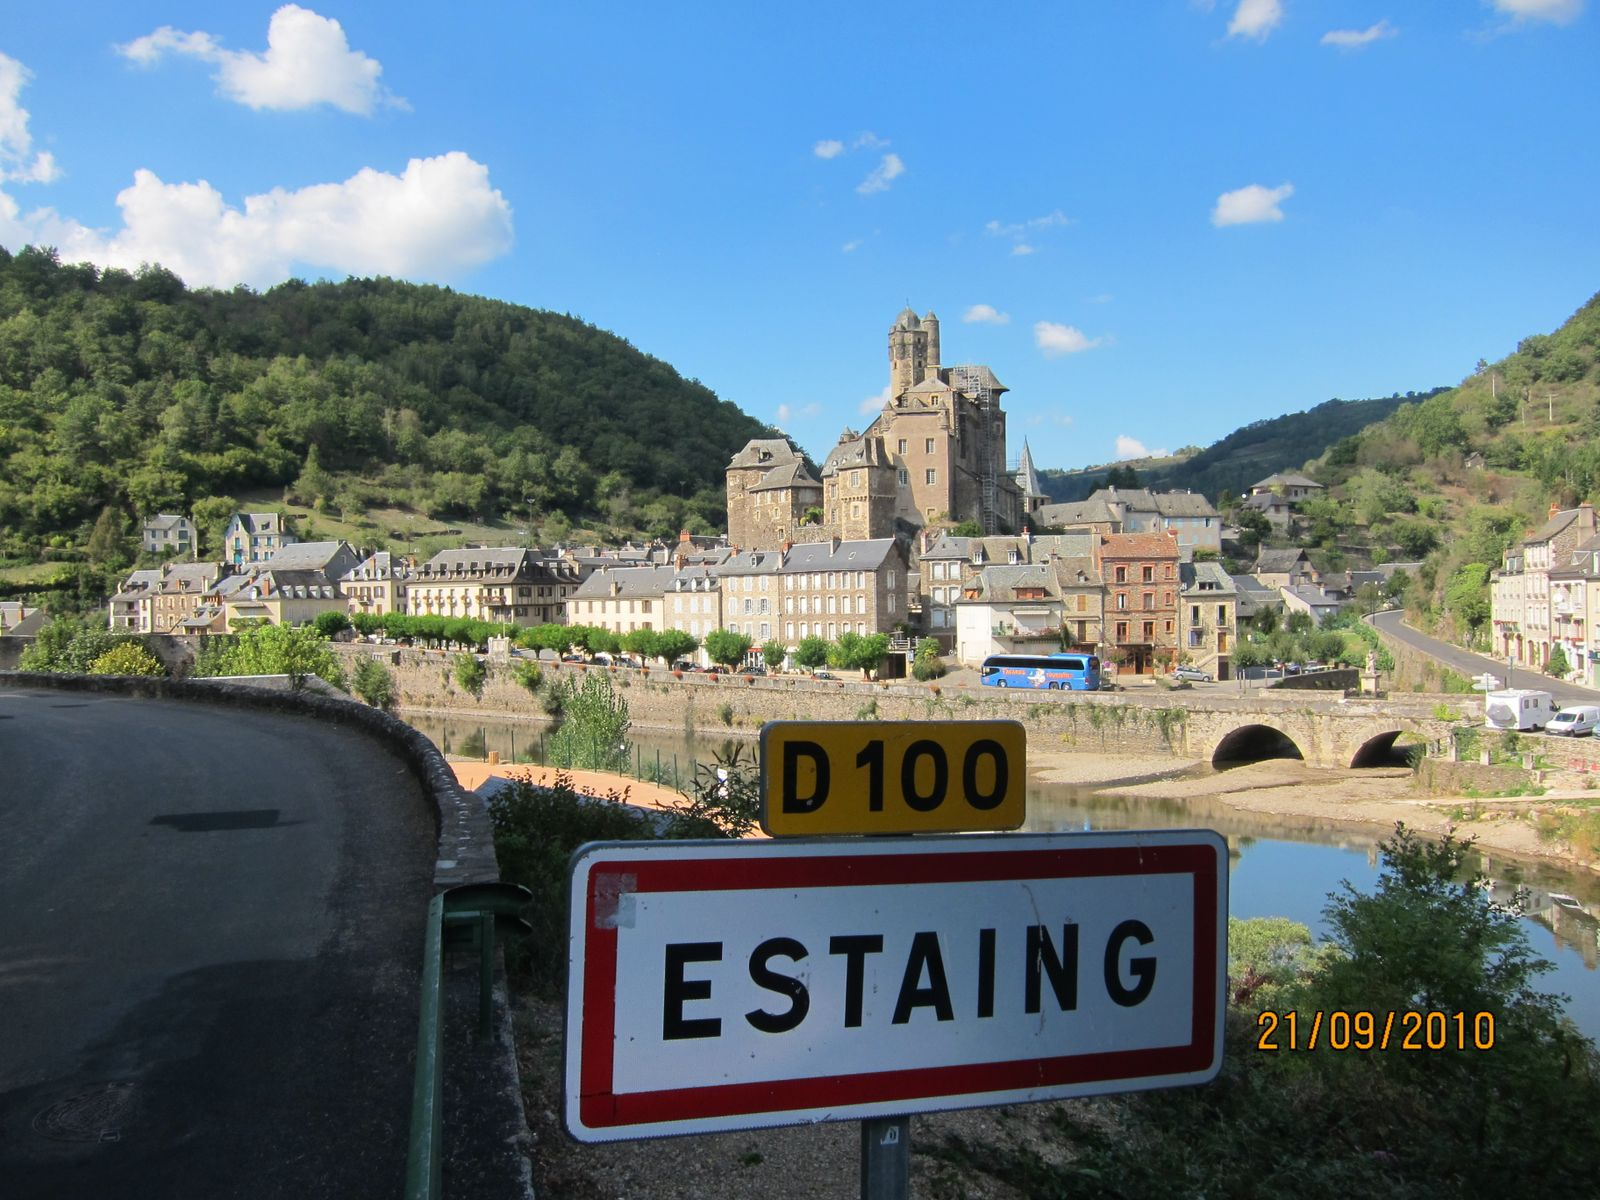 Belle vue d'Estaing, village classé à 4kms du gîte